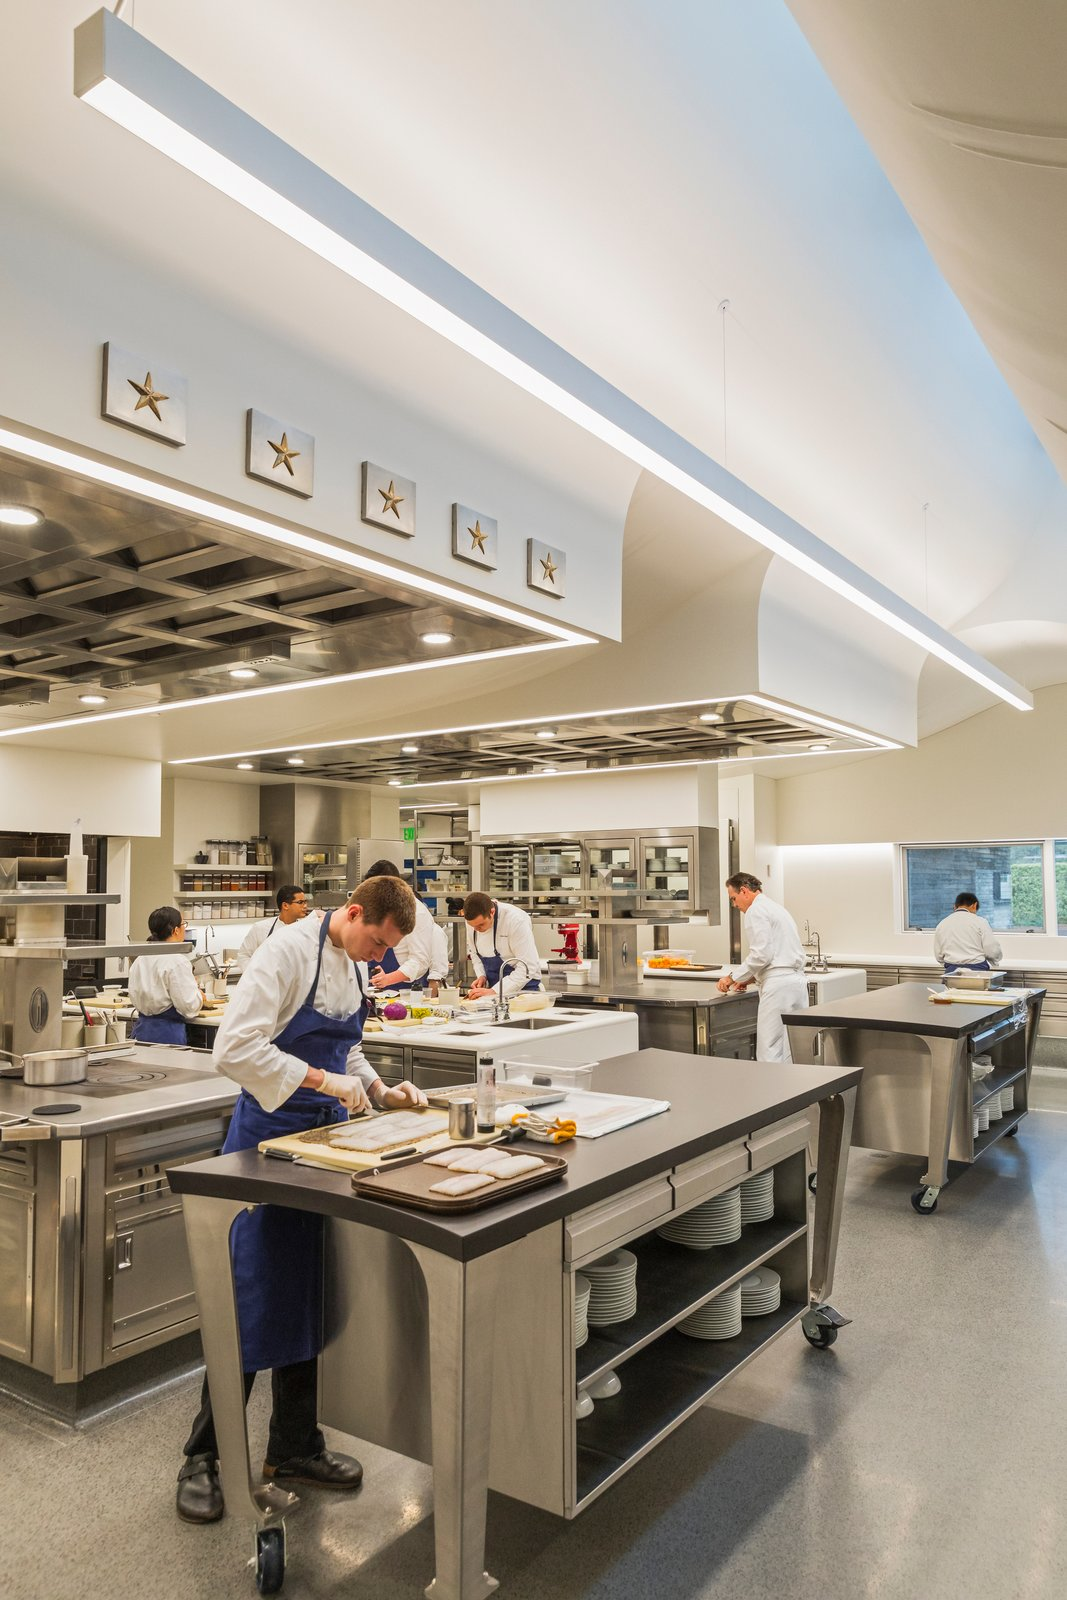 The 2,000-square-foot kitchen provides a comfortable, light-filled working space for the chefs and is configured as a single, continuous space. Tagged: Kitchen, Metal Cabinet, Cooktops, Recessed Lighting, and Terrazzo Floor.  Best Photos from A Look Inside The French Laundry's Stunning $10M Renovation